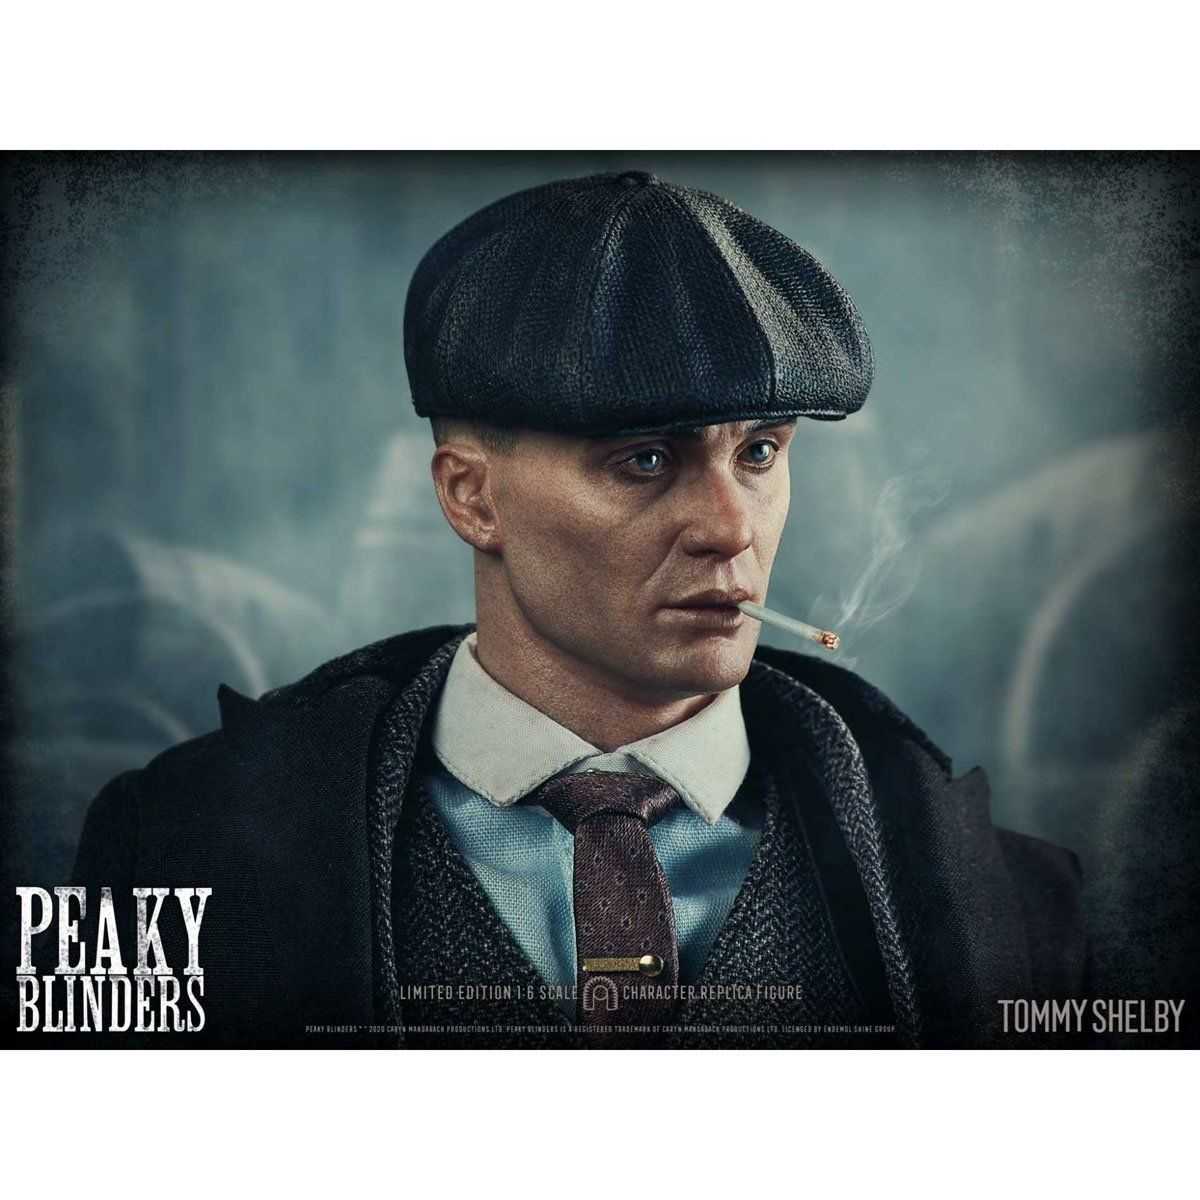 Buy Peaky Blinders Tommy Shelby 1 6 Scale Action Figure At Entertainment Earth Mint Condition Guaranteed Fr In 2020 Peaky Blinders Tommy Shelby Peaky Blinders Shelby